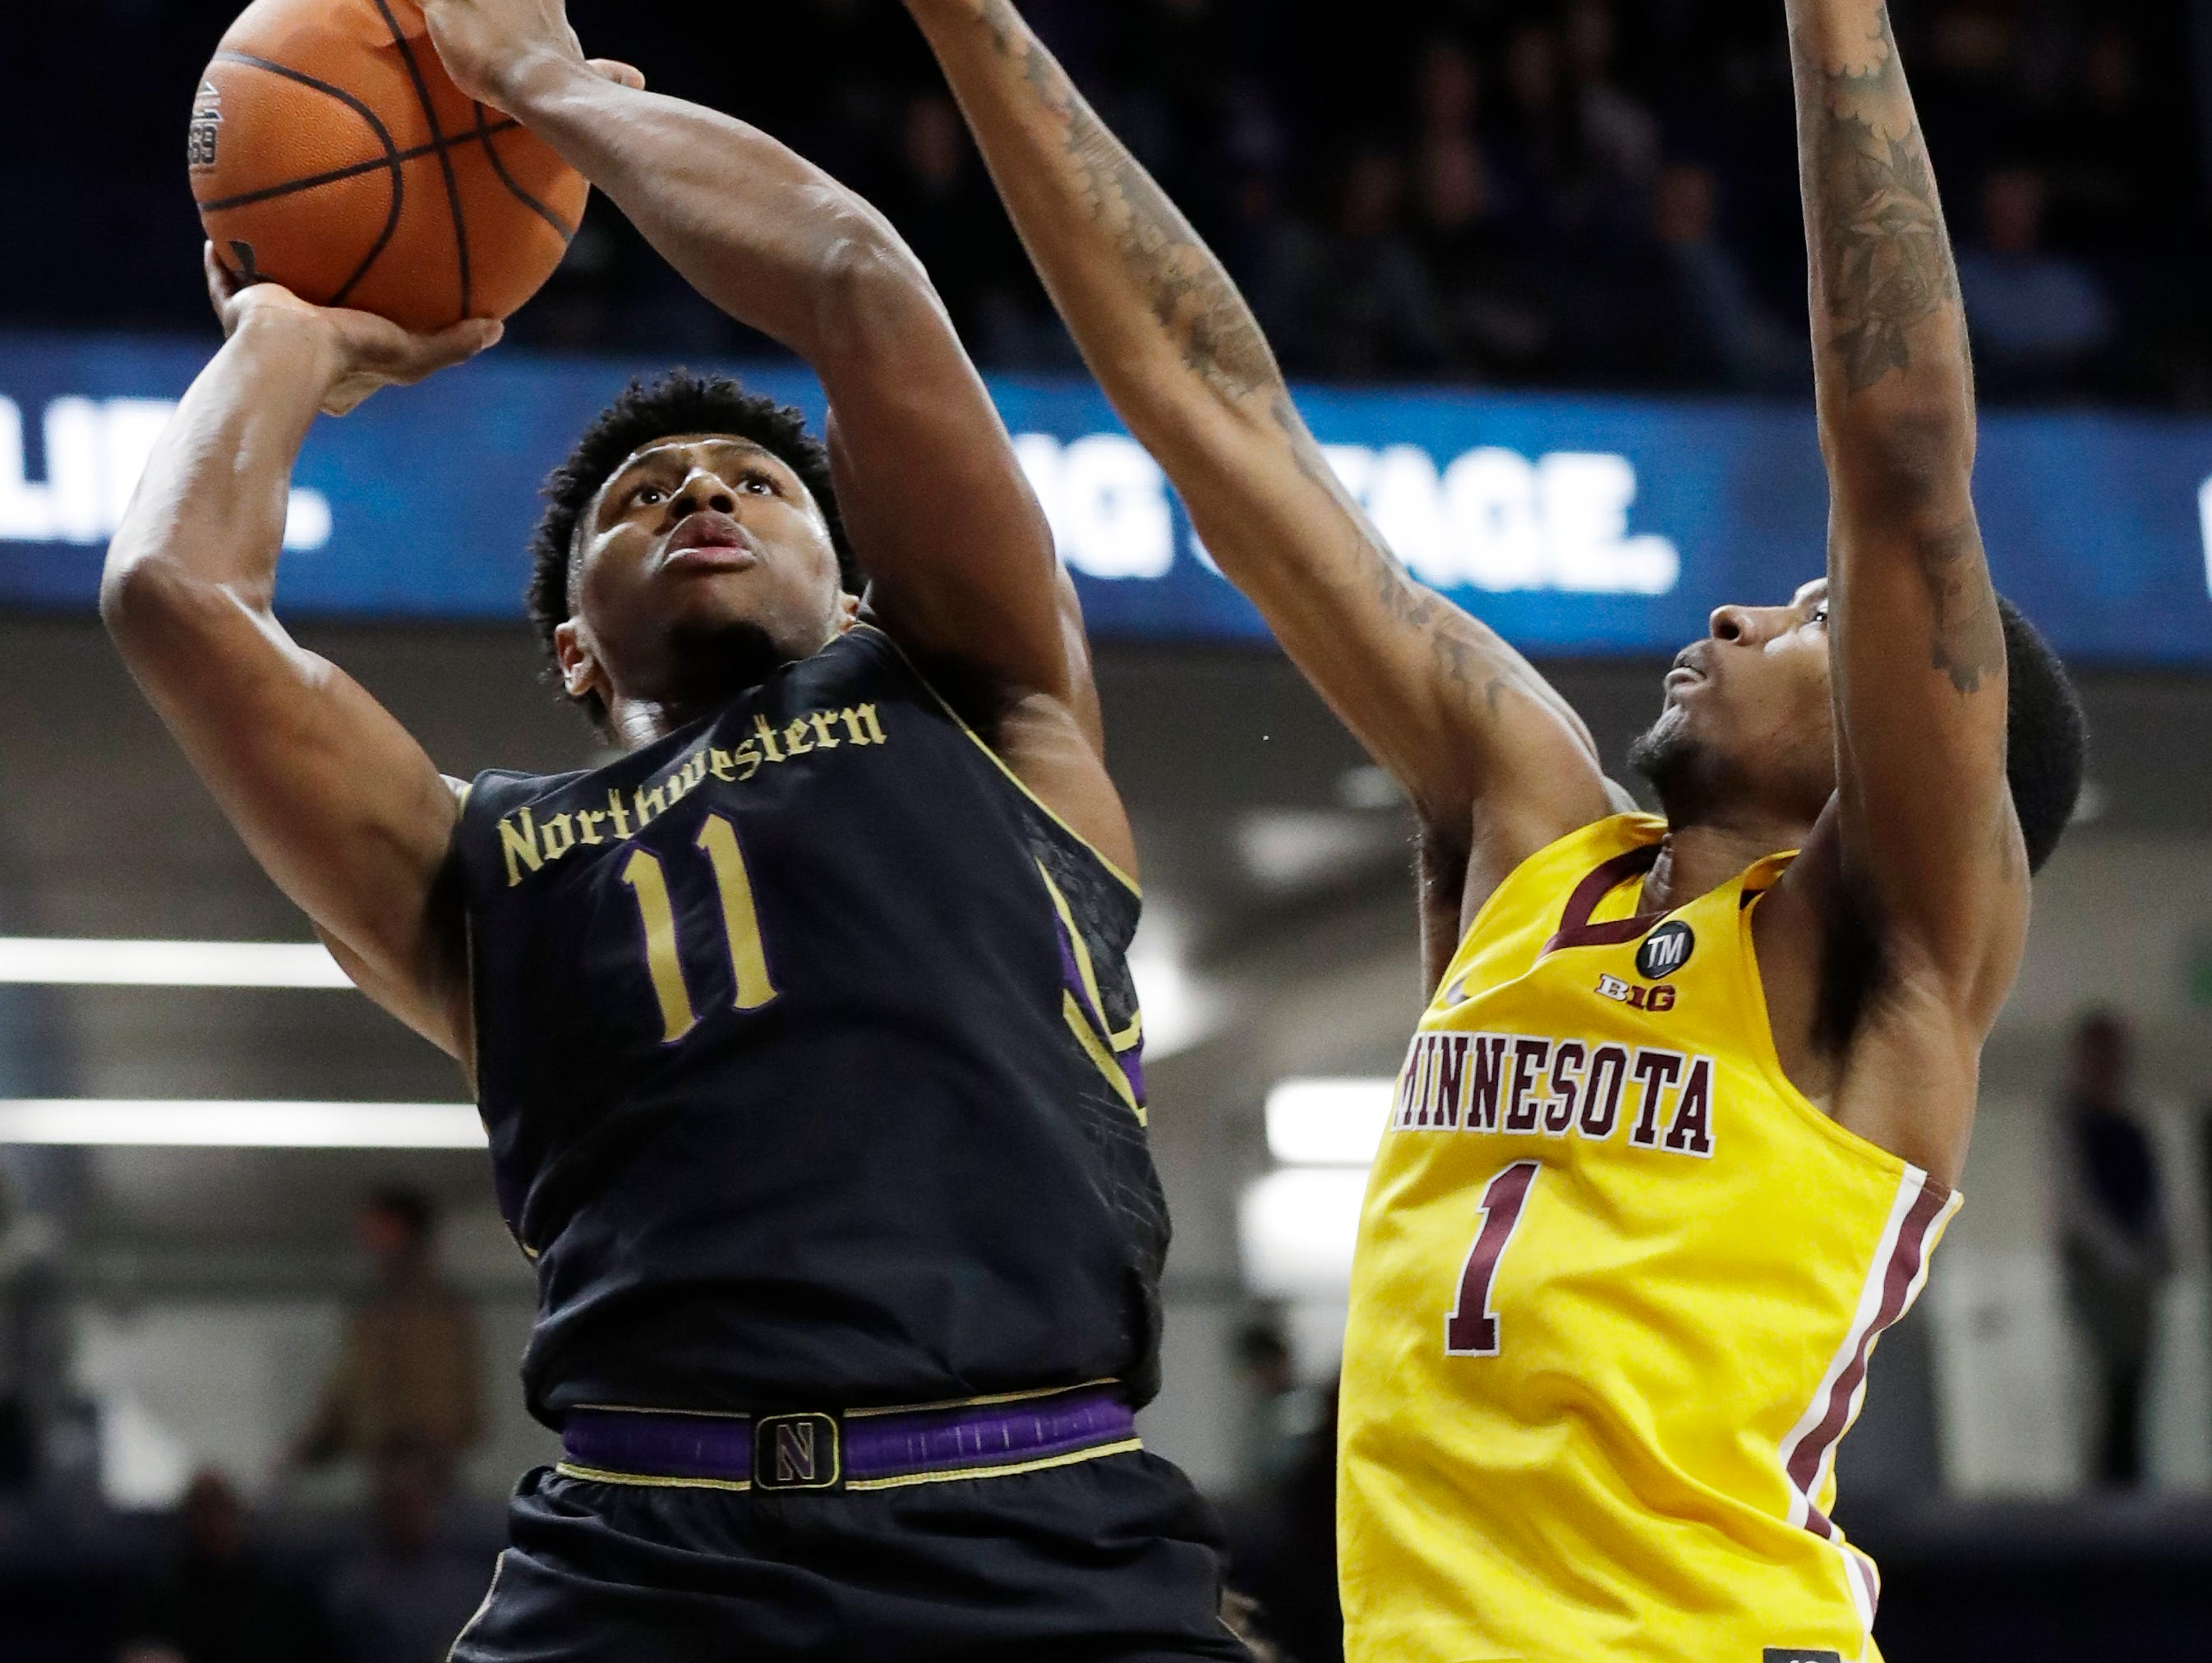 14. Northwestern (12-17, 3-15) – Things can't end fast enough for the Wildcats, who lost their 10th in a row on Sunday at Illinois. The Cats haven't won a game since beating Indiana on Jan. 22 and getting one more victory in the final week of the regular season will be a tough ask as they host Ohio State then finish things on the road at Purdue. Last week: 14.